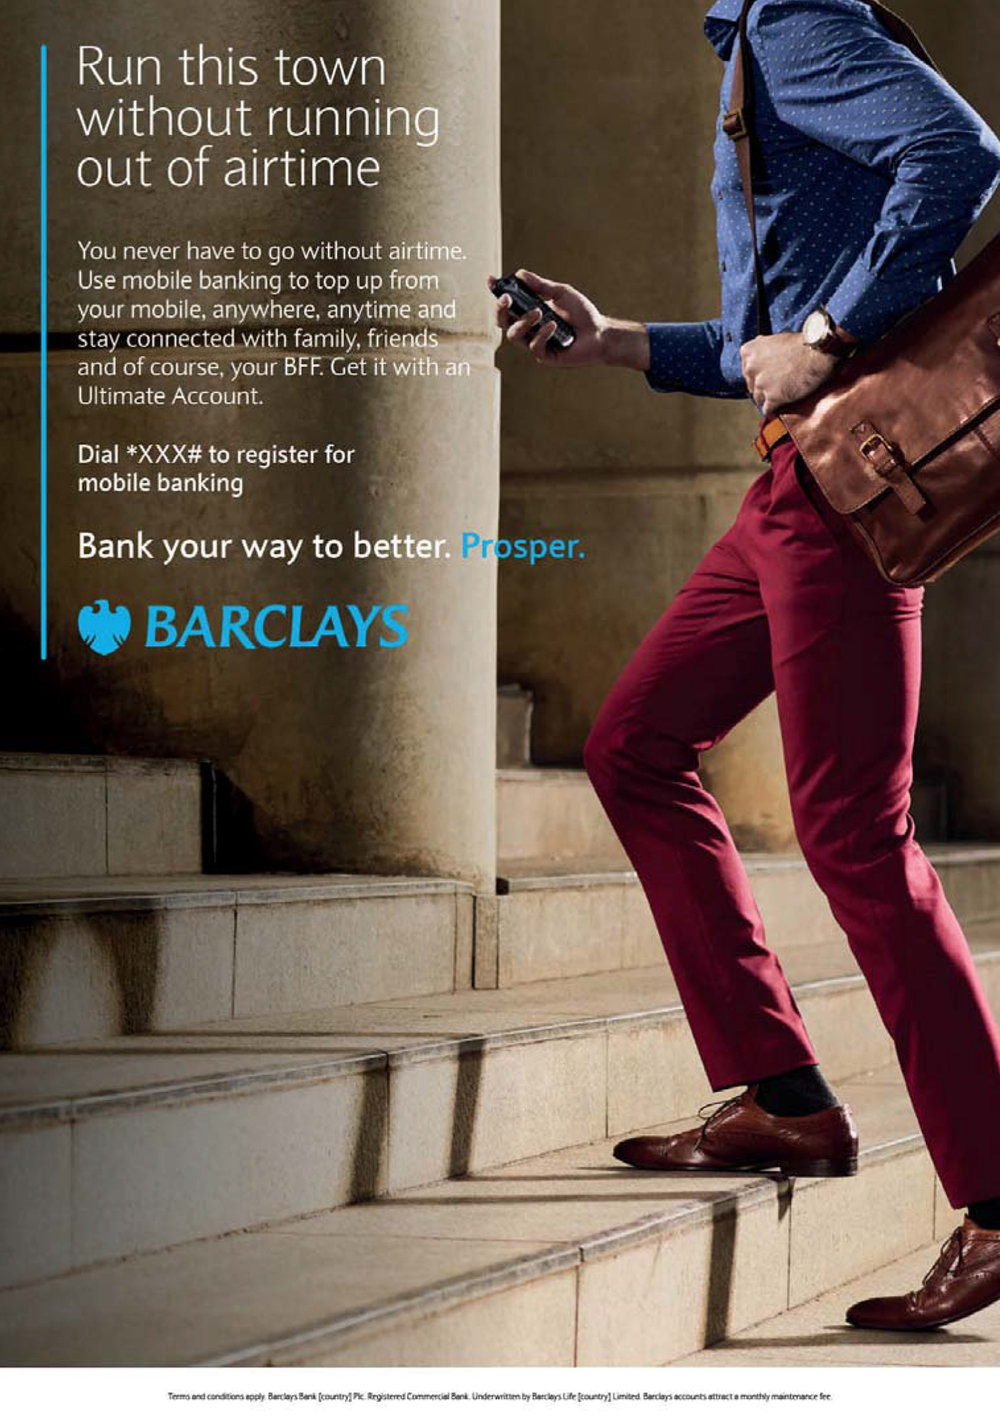 Barclays Personal Banking Campaign Toolkit 26 APRIL-85.jpg